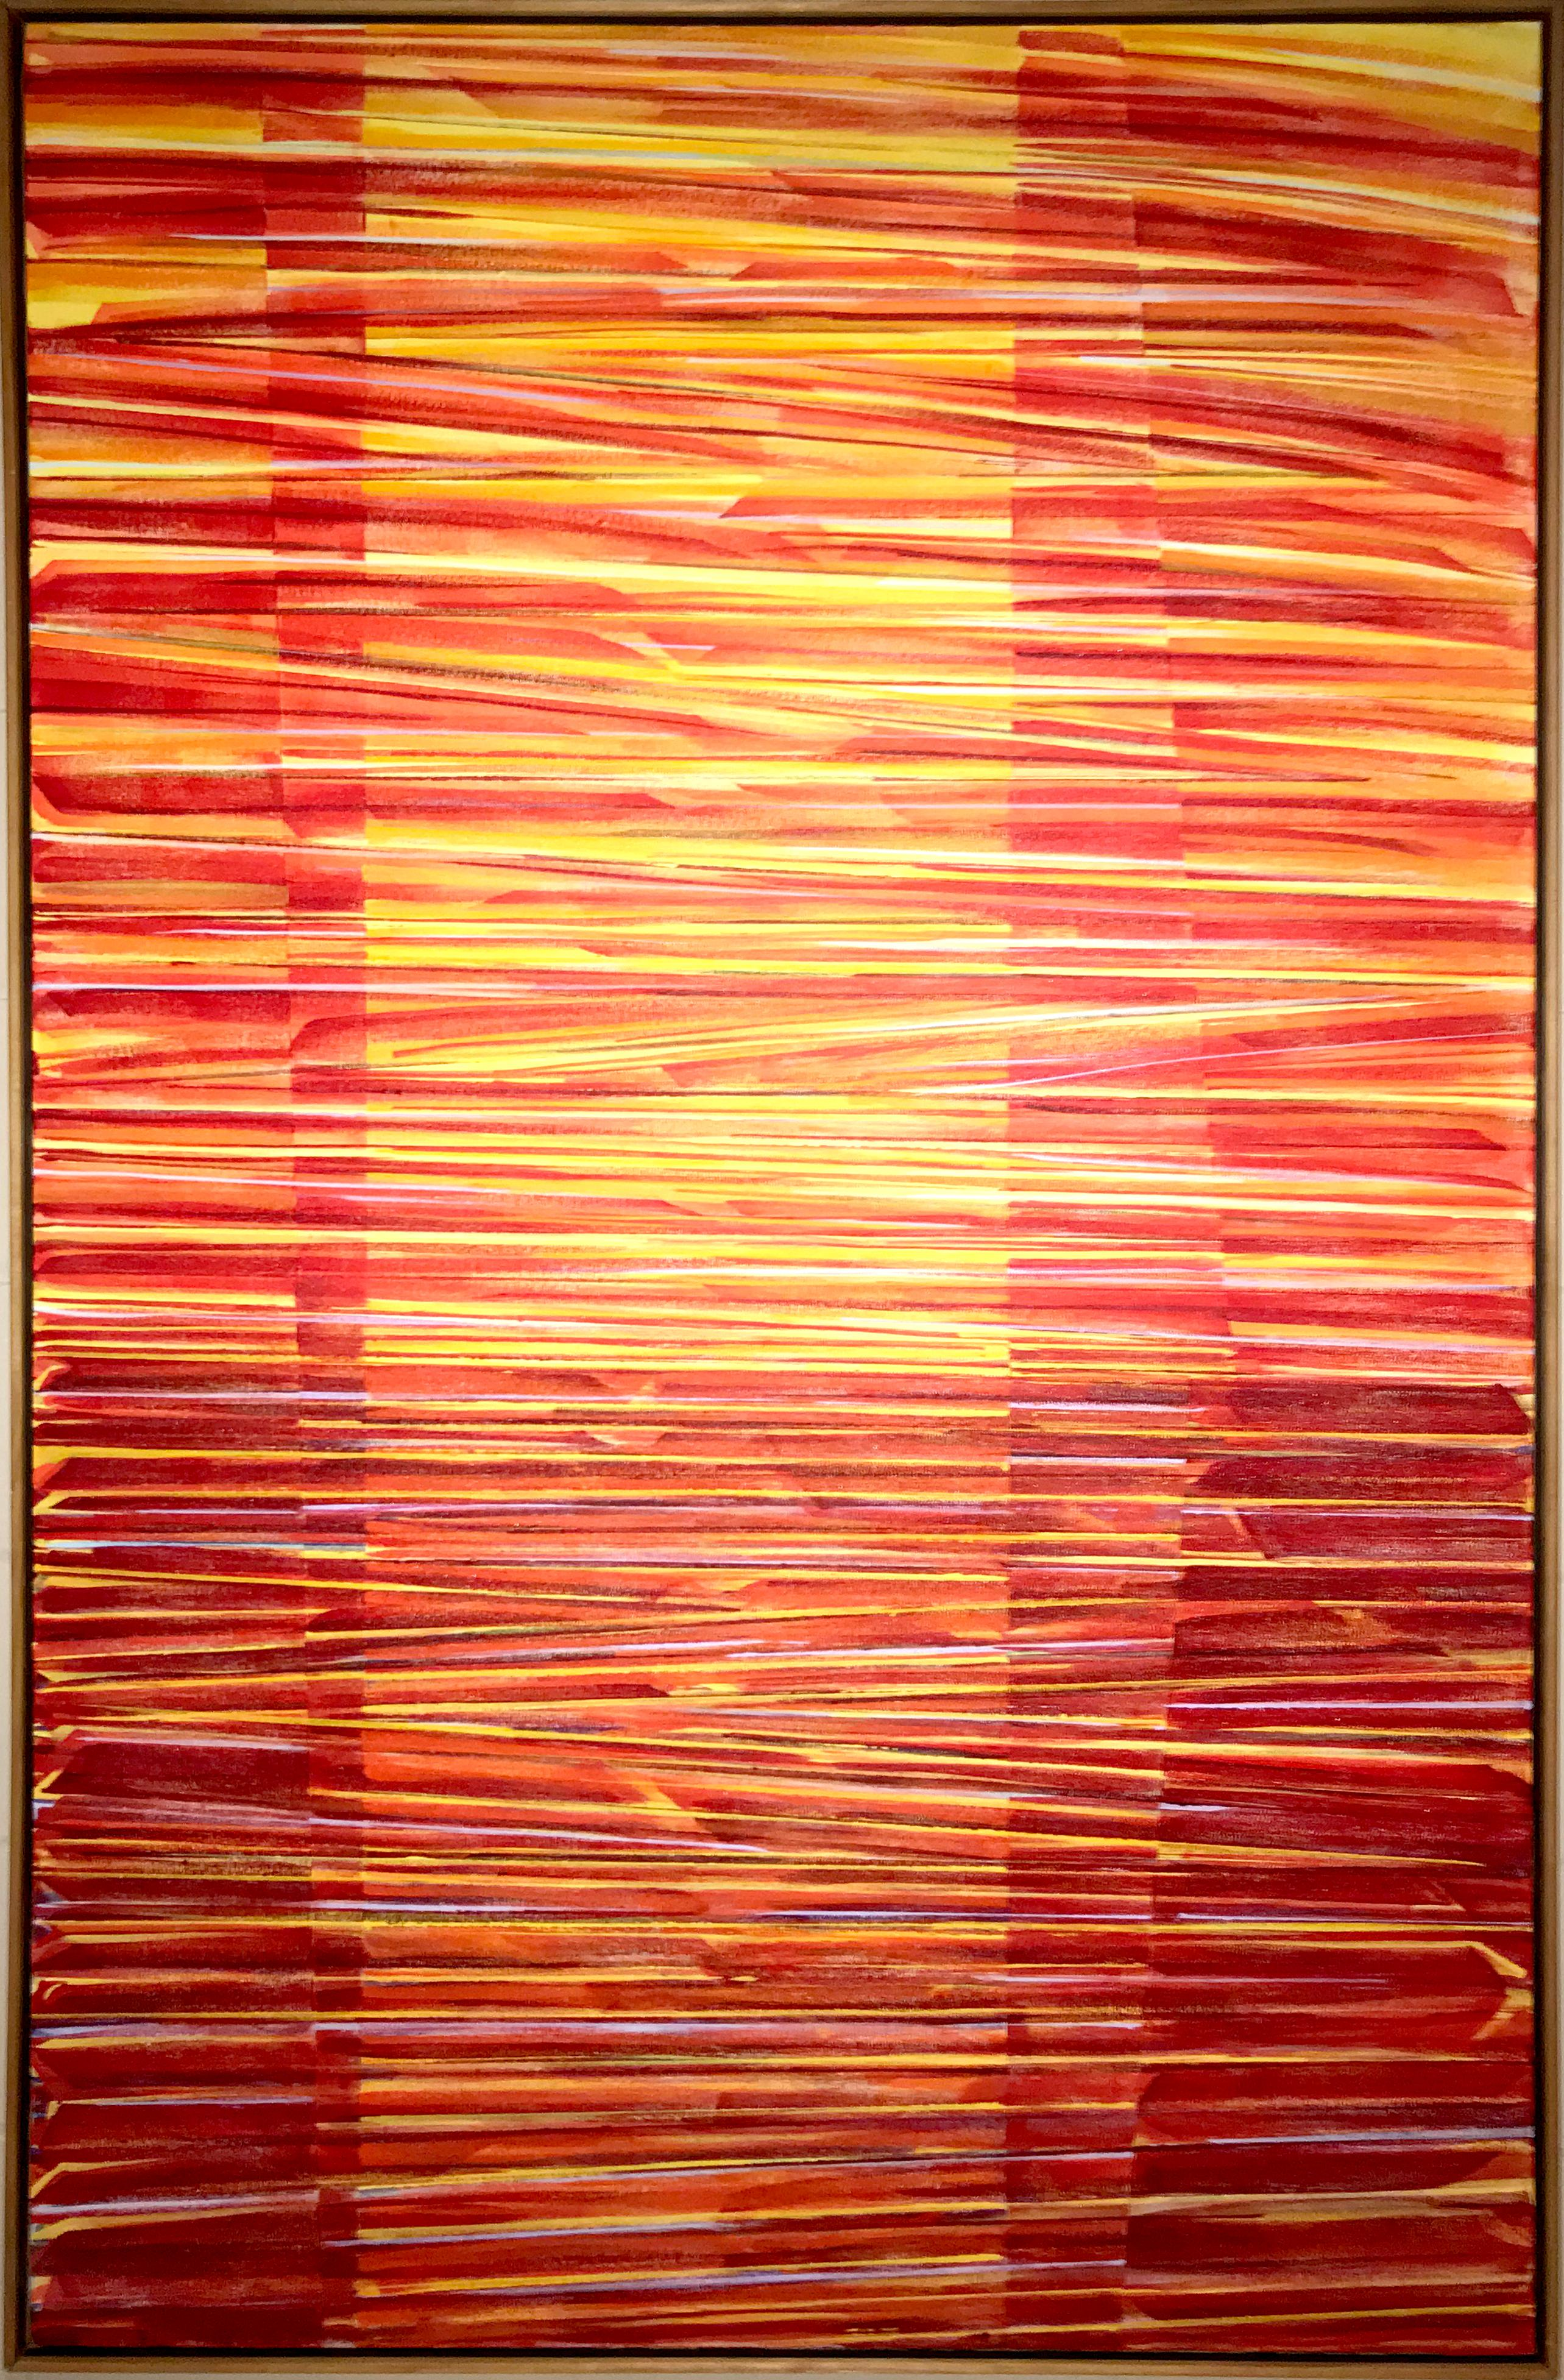 On Reflection II, Large Geometric Abstract Painting by Todd Boppel